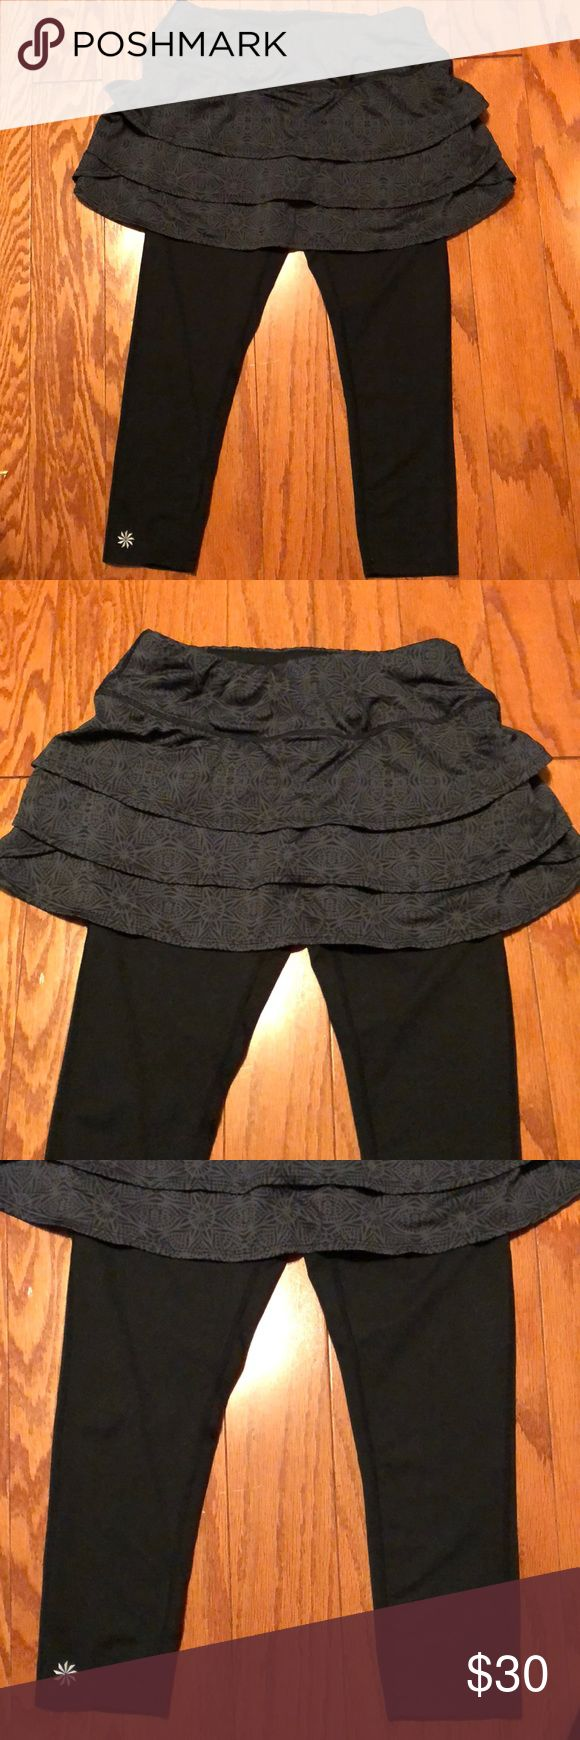 SALE!!🎉 ATHLETA BLACK SKIRT WITH CAPRI LEGGINGS •Black Skirt with Capri Leggings •Stretchable •1 Back Pocket •Adjustable Pink String •Inseam: 18.5 •Waist Rise: 7.5 •Waist Line: 12 •Top to Bottom of Skirt: 11 •Top to Bottom (Whole): 25 •Material: see the last picture •In good condition Athleta Pants Leggings